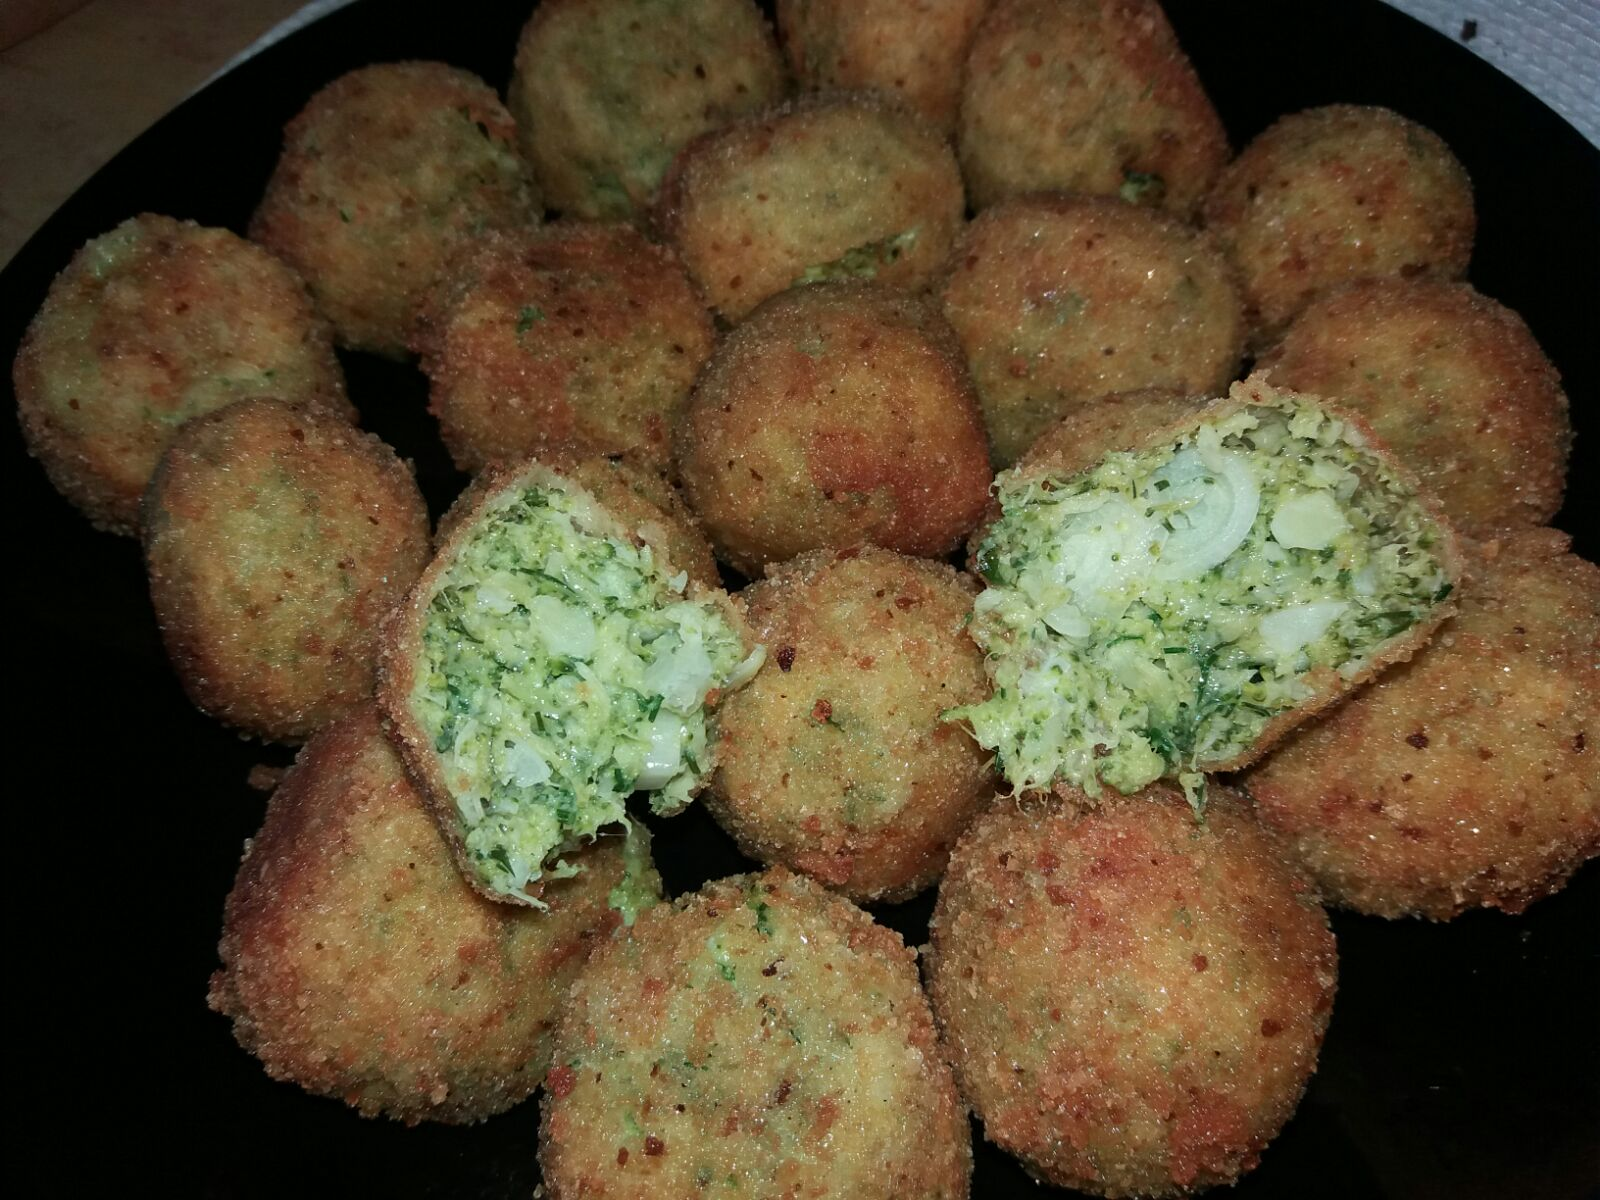 Broccoli pane